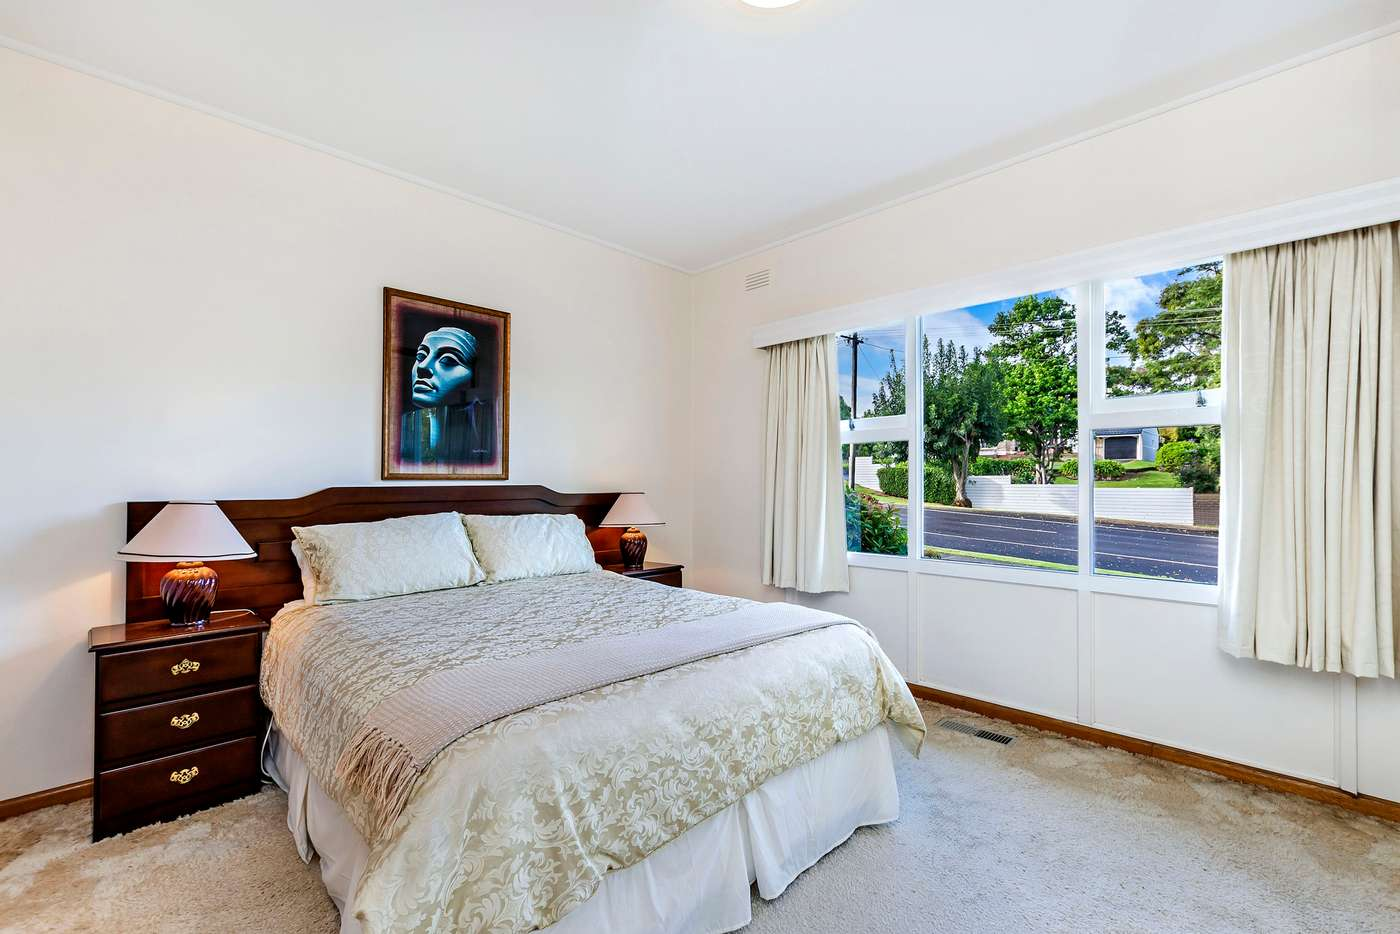 Sixth view of Homely house listing, 38 Must Street, Portland VIC 3305